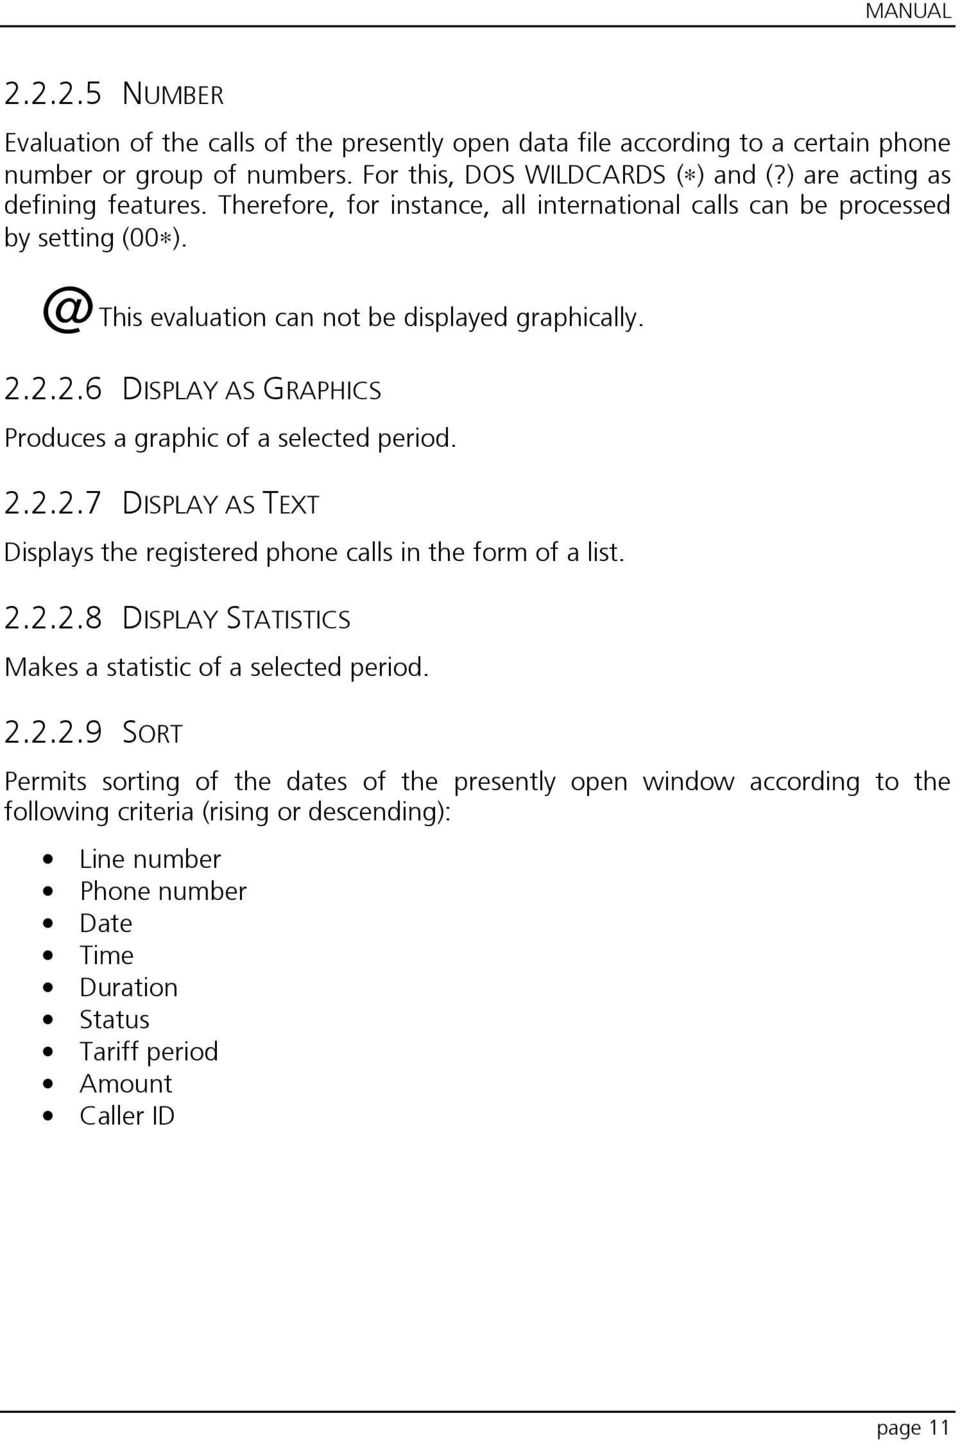 2.2.6 DISPLAY AS GRAPHICS Produces a graphic of a selected period. 2.2.2.7 DISPLAY AS TEXT Displays the registered phone calls in the form of a list. 2.2.2.8 DISPLAY STATISTICS Makes a statistic of a selected period.